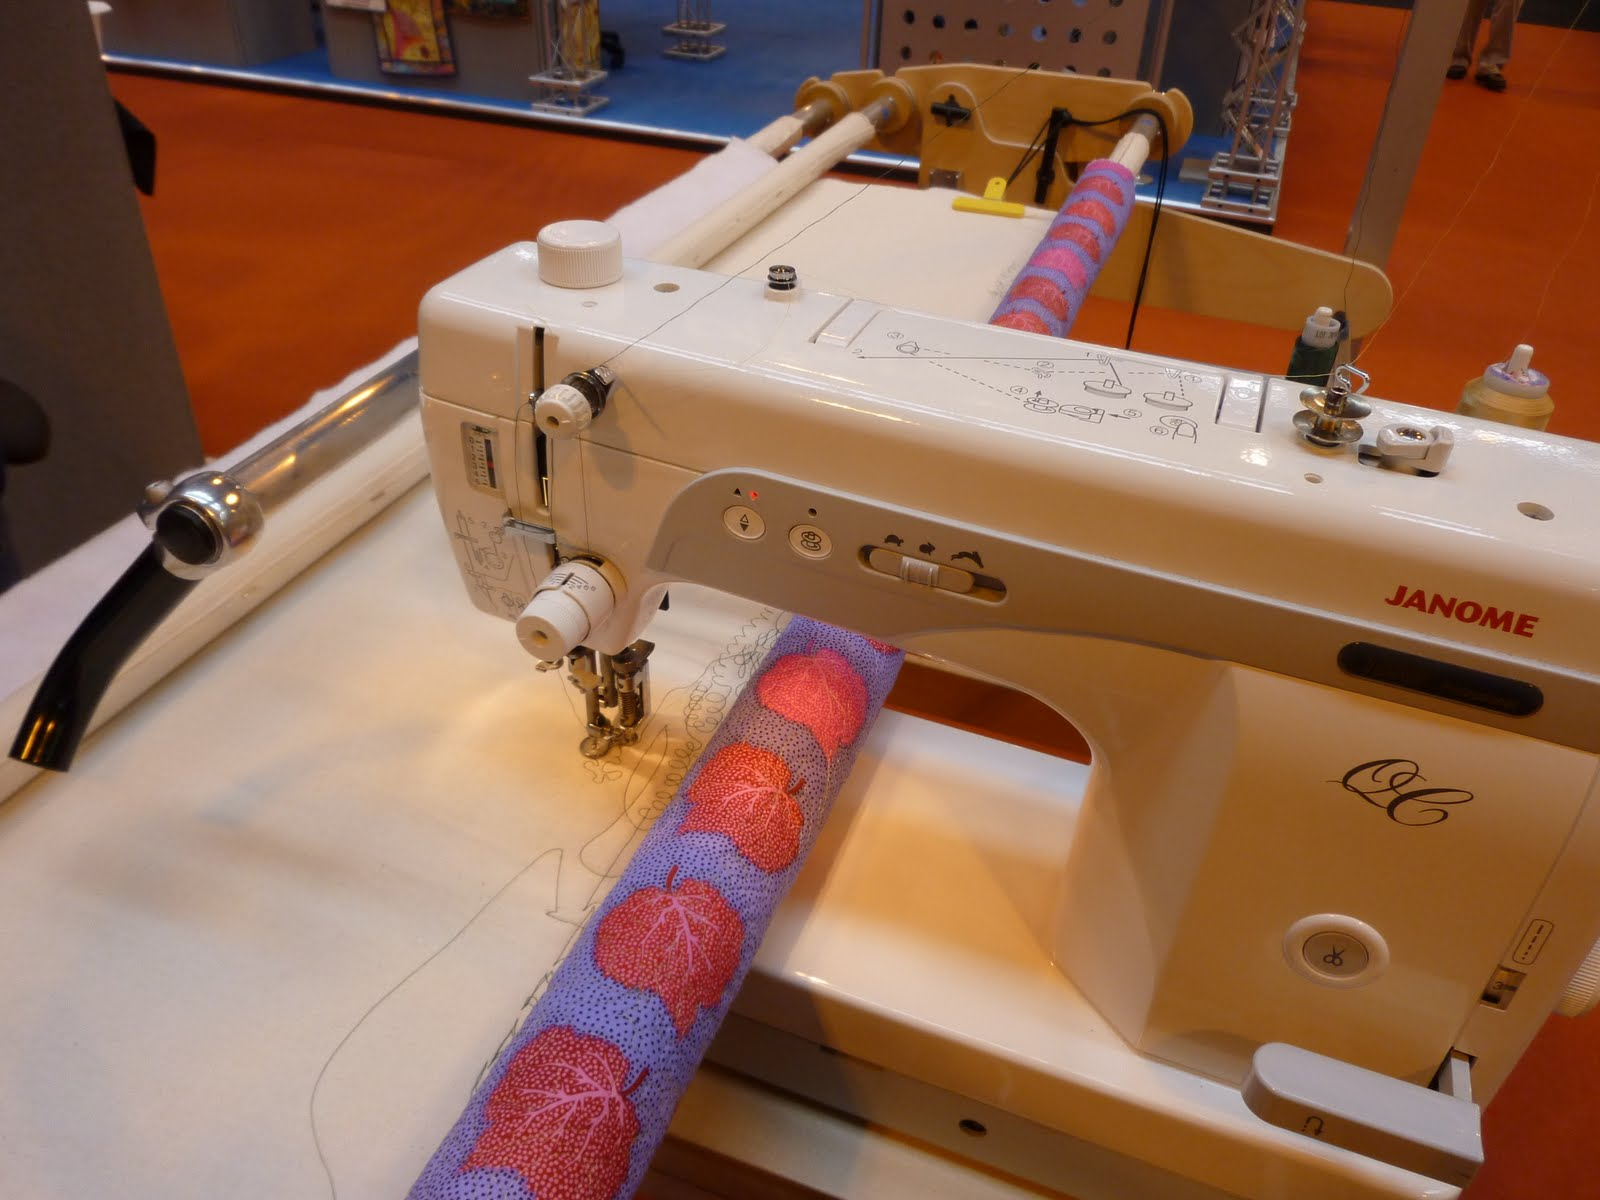 Sew Janome Freestyle Quilting Frame Using The Janome 1600p